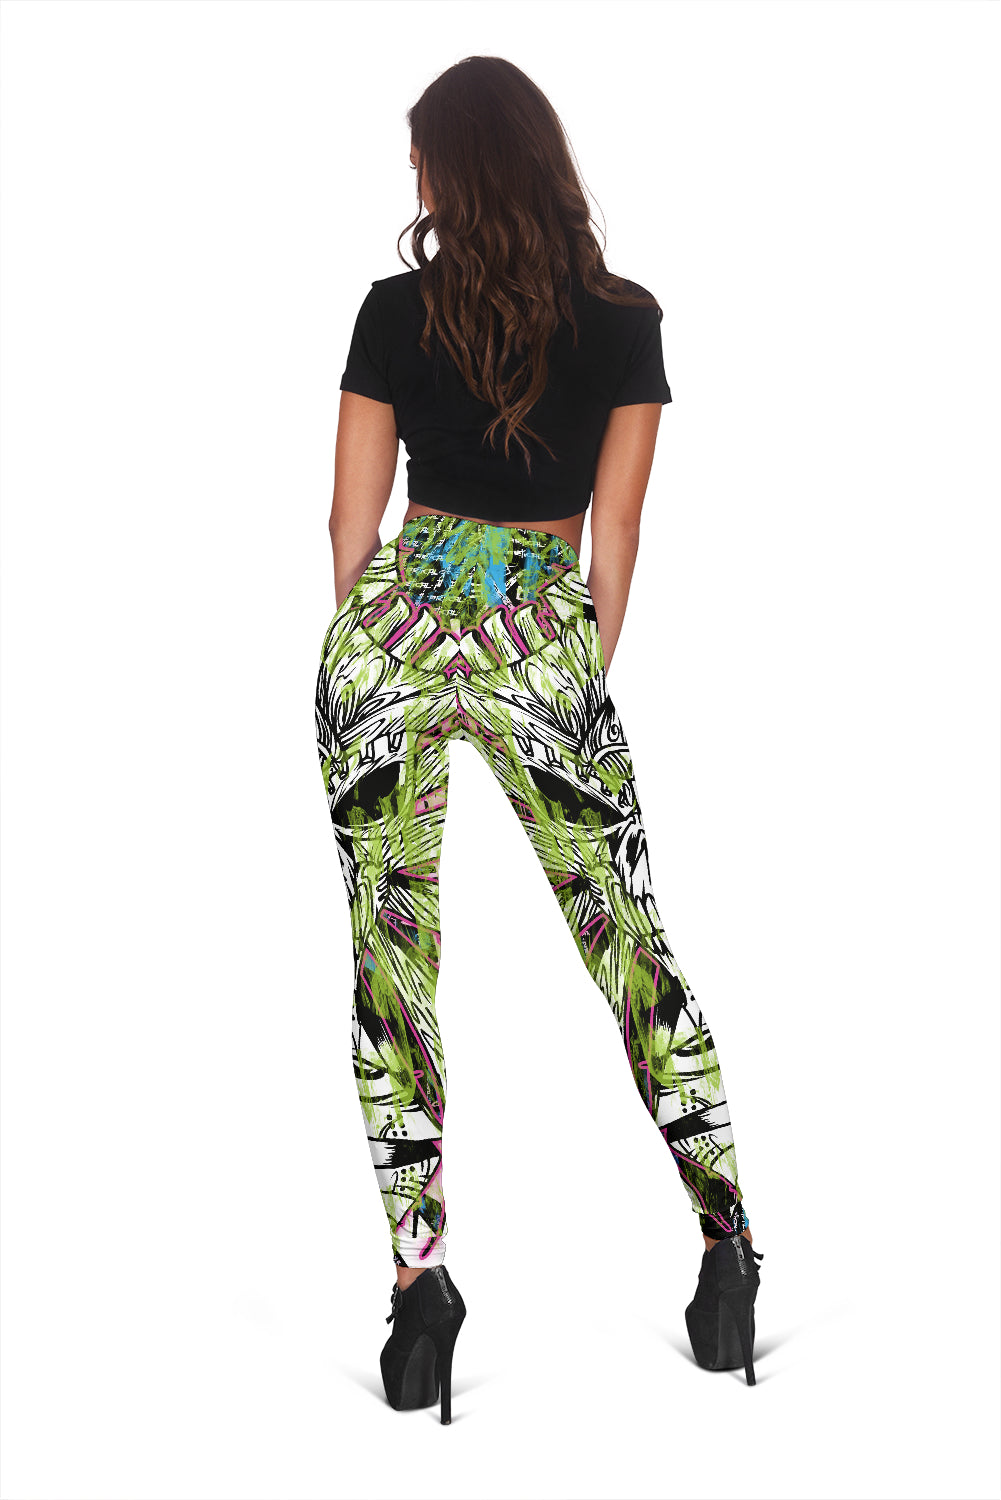 Twista Women's Leggings